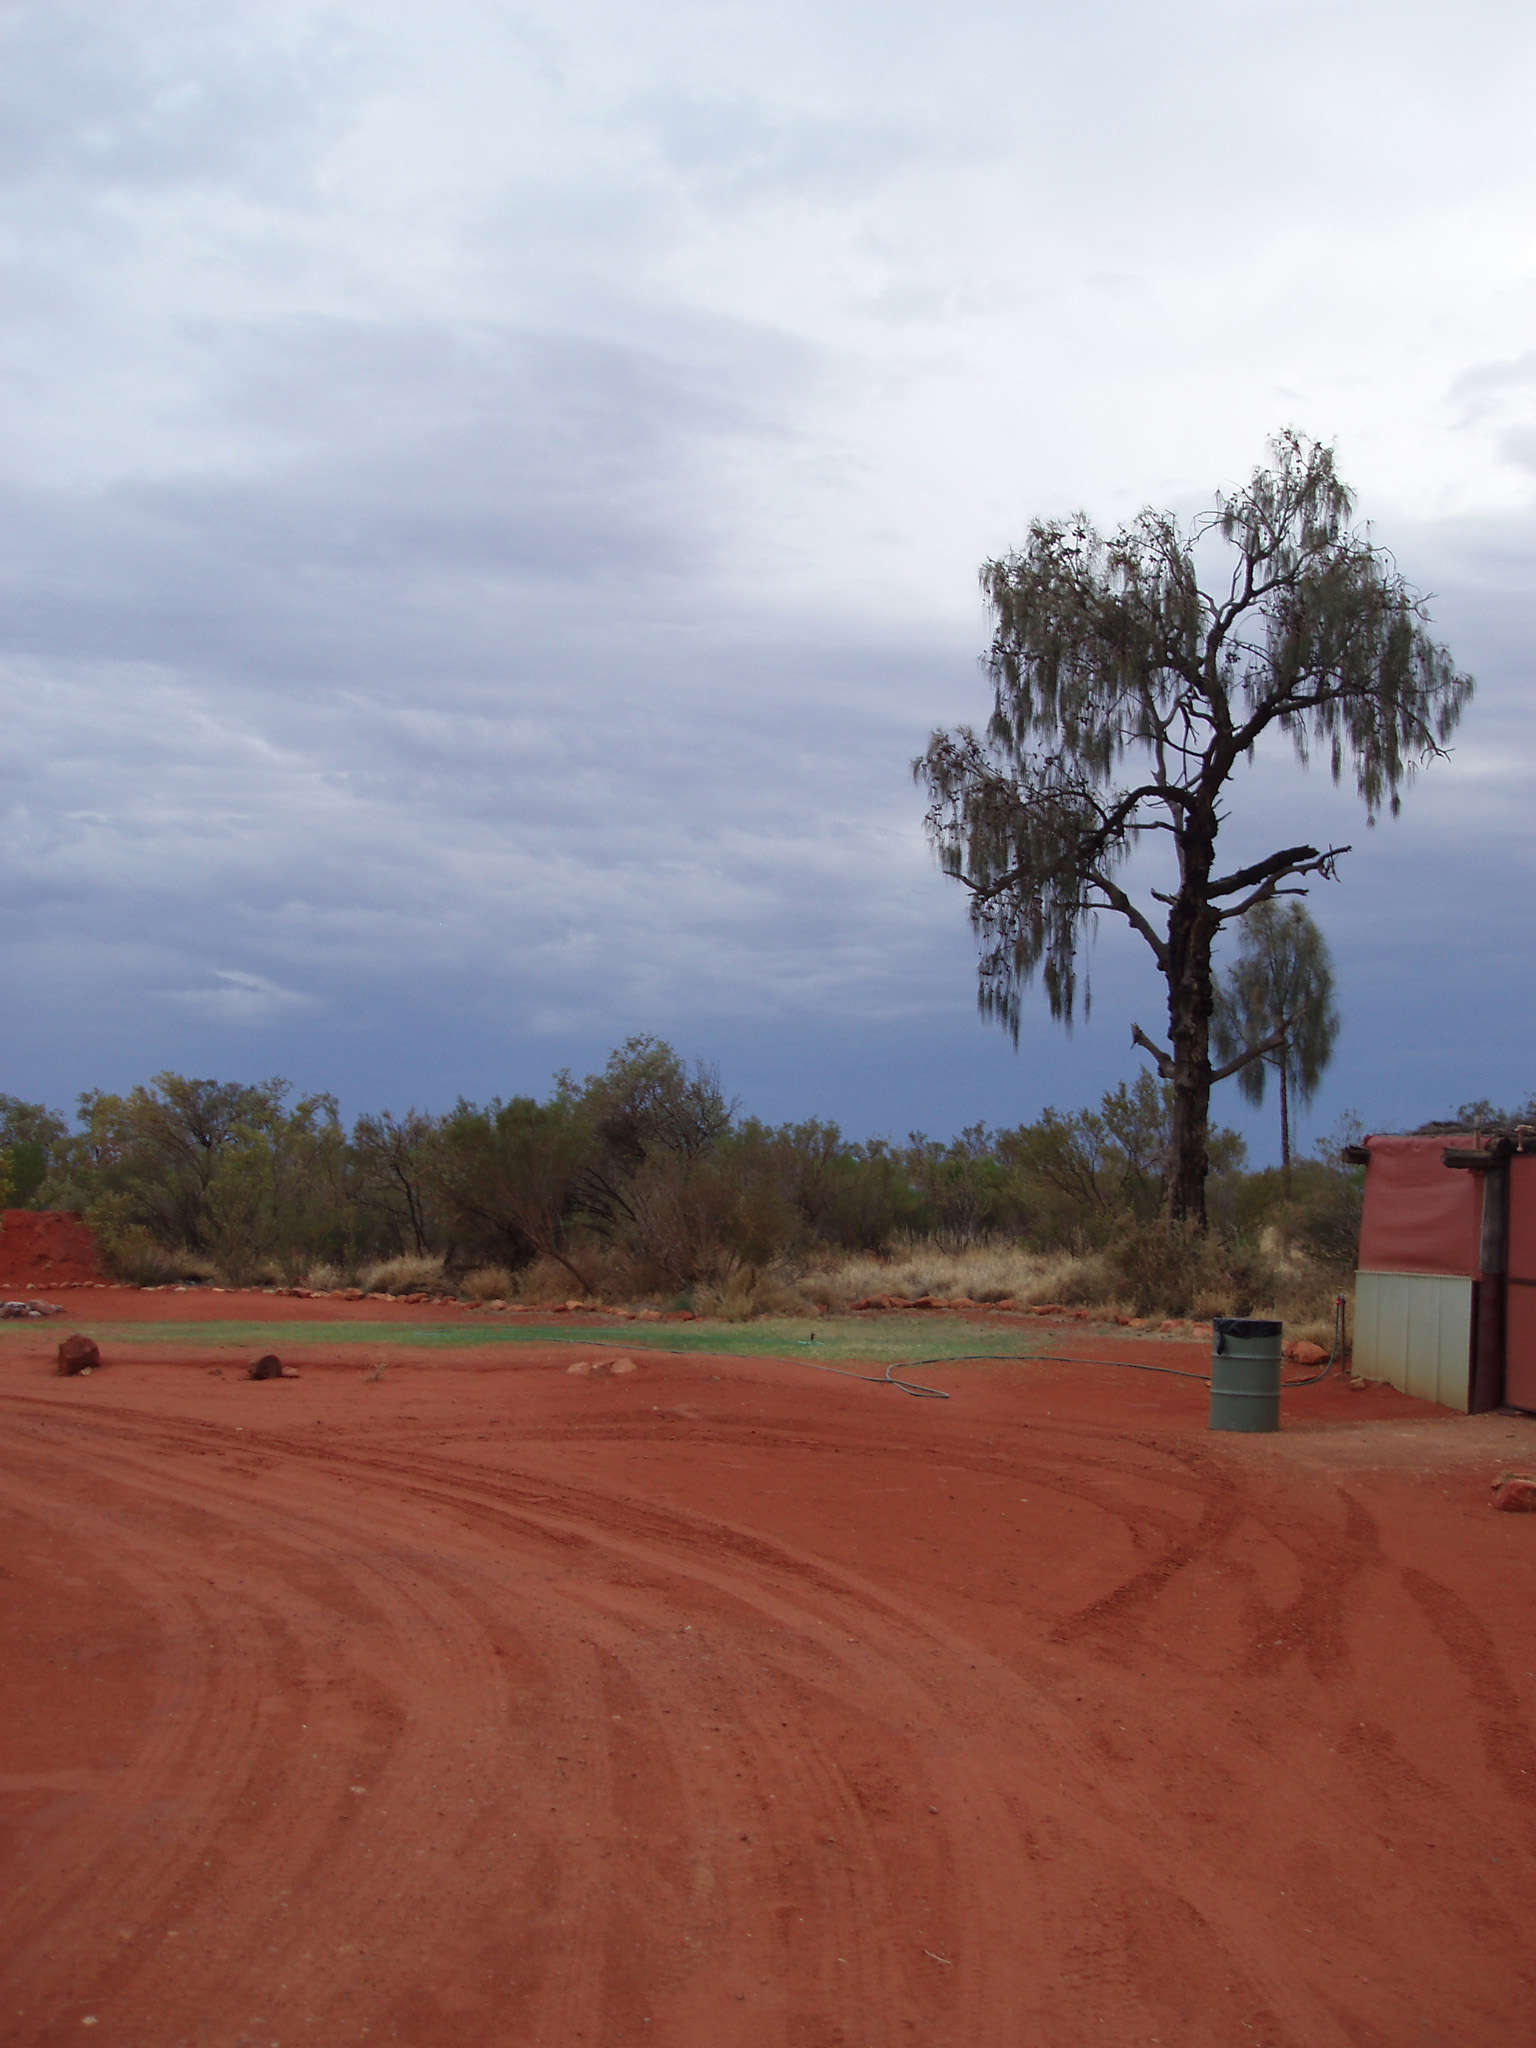 Red Landscape at Kings Creek Station in Australia with Tall Green Trees Afar. A Good Place for Camping.